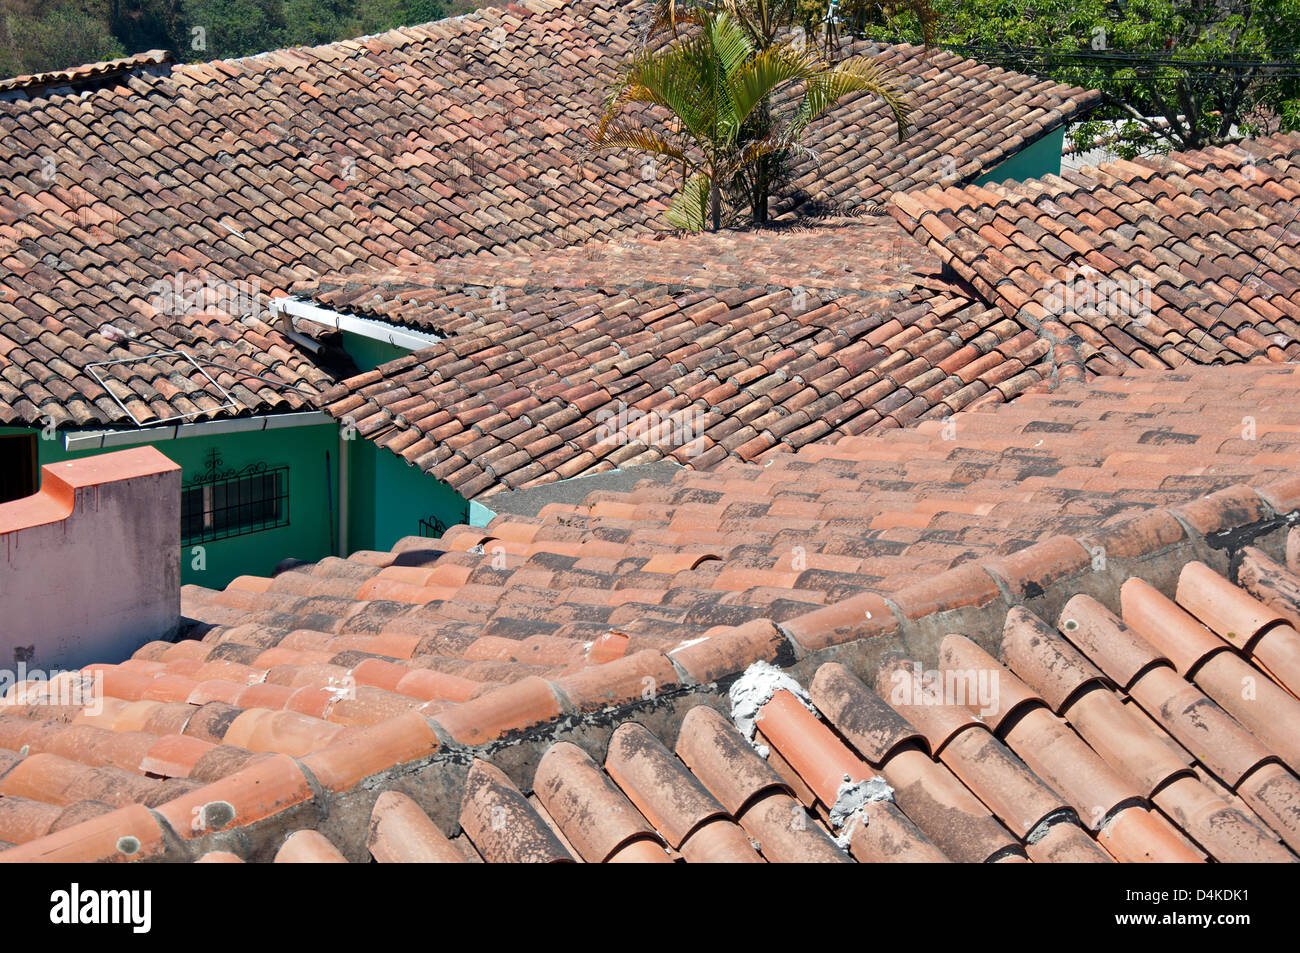 Roofs Of Spanish Style Clay Tiles On Houses In Santa Lucia, Honduras.